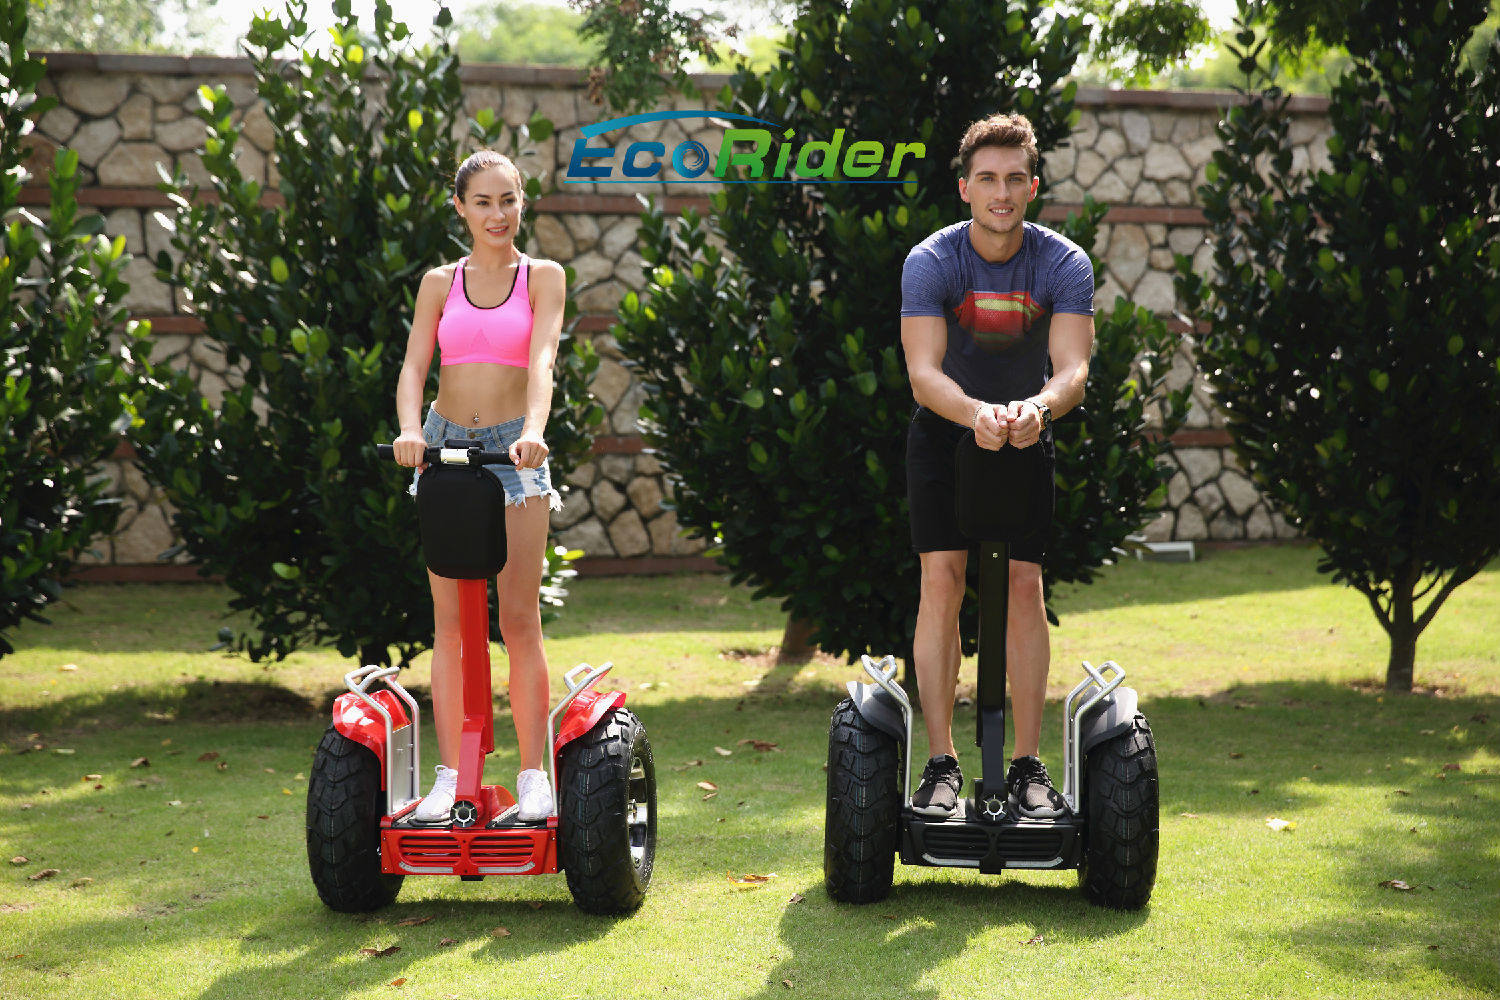 Scooter Segway